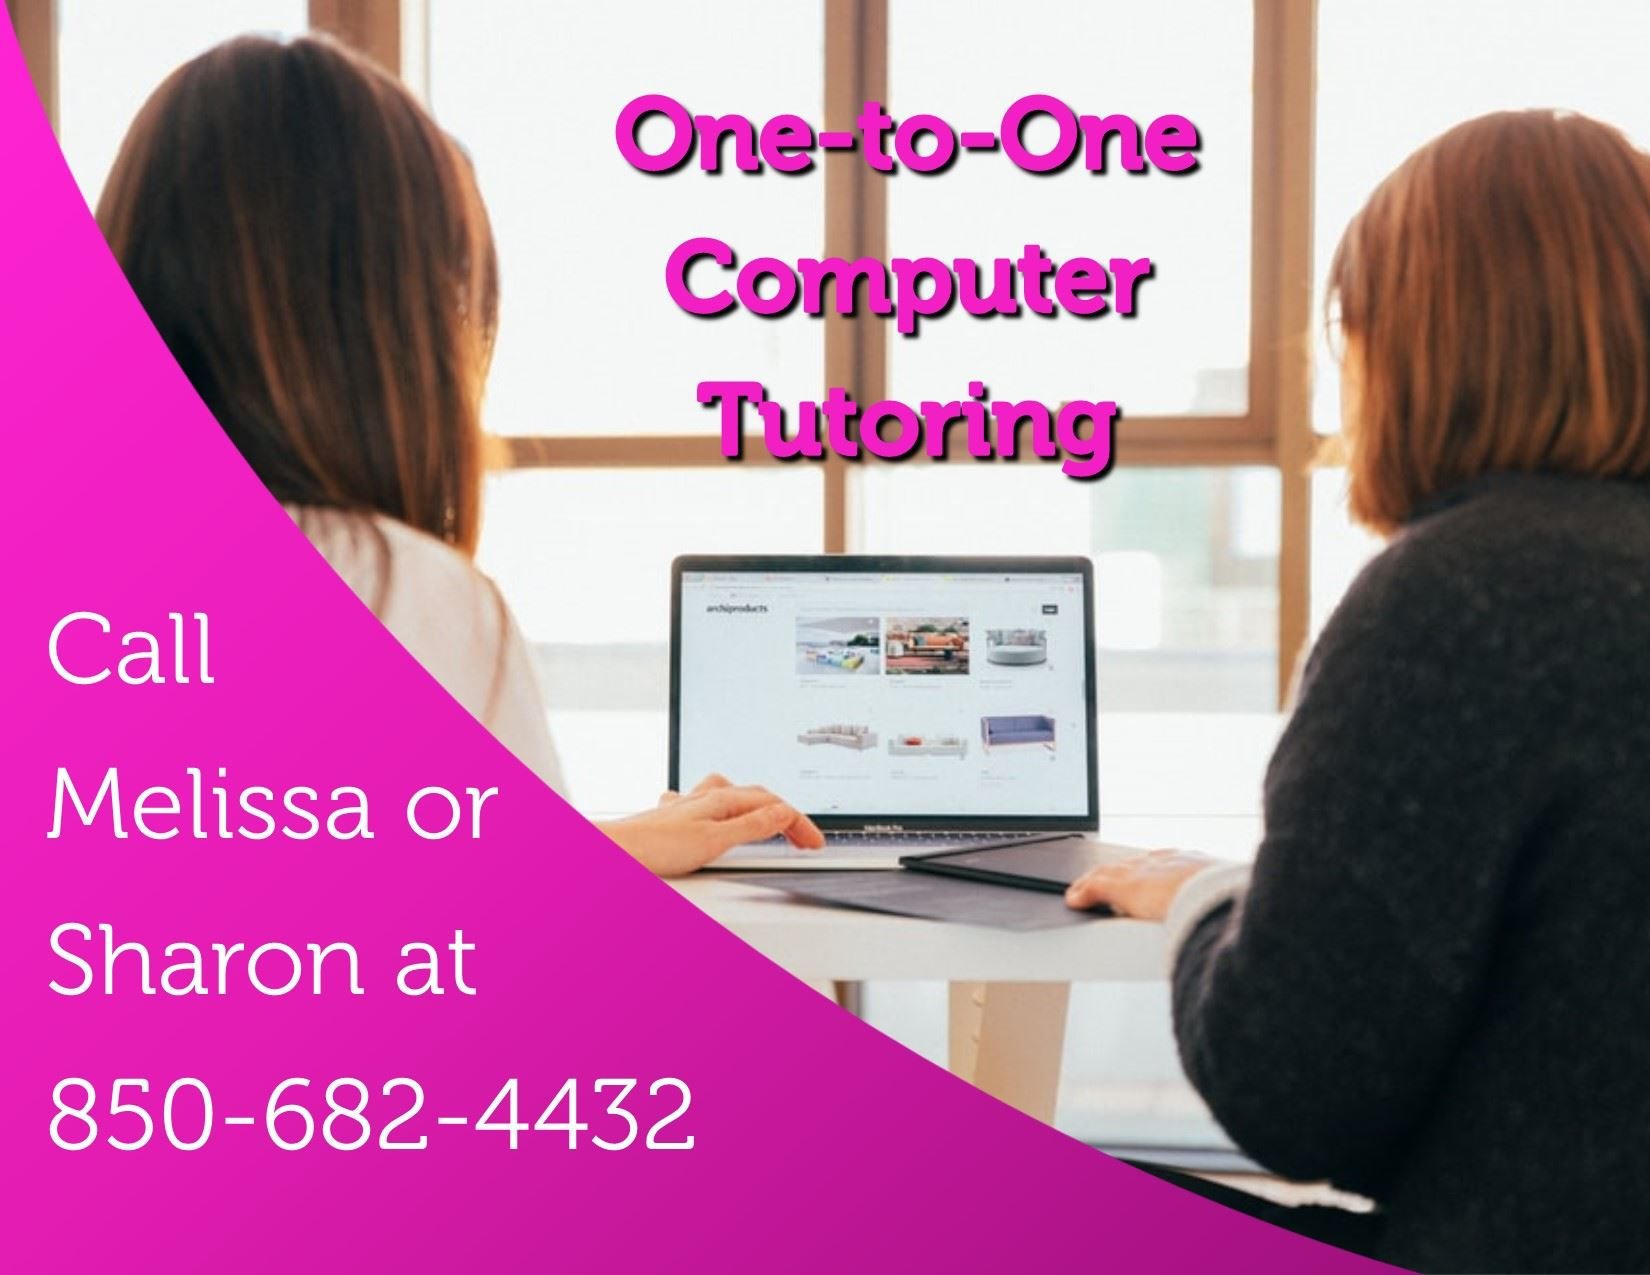 Call for one to one computer help